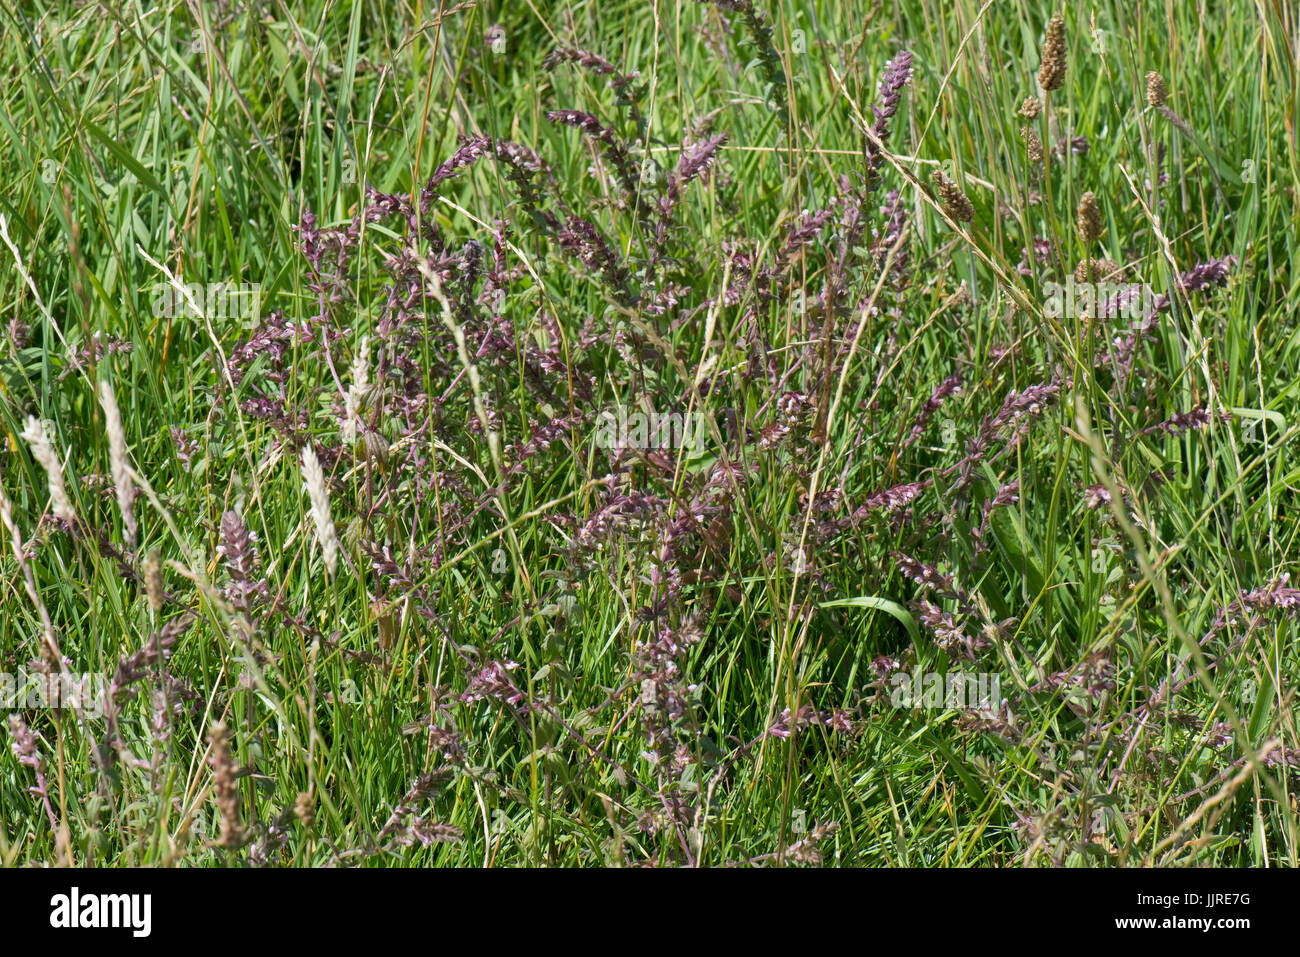 Red bartsia, Odontites vernus, flowering hemiparasite in grassland, Berkshire, July - Stock Image